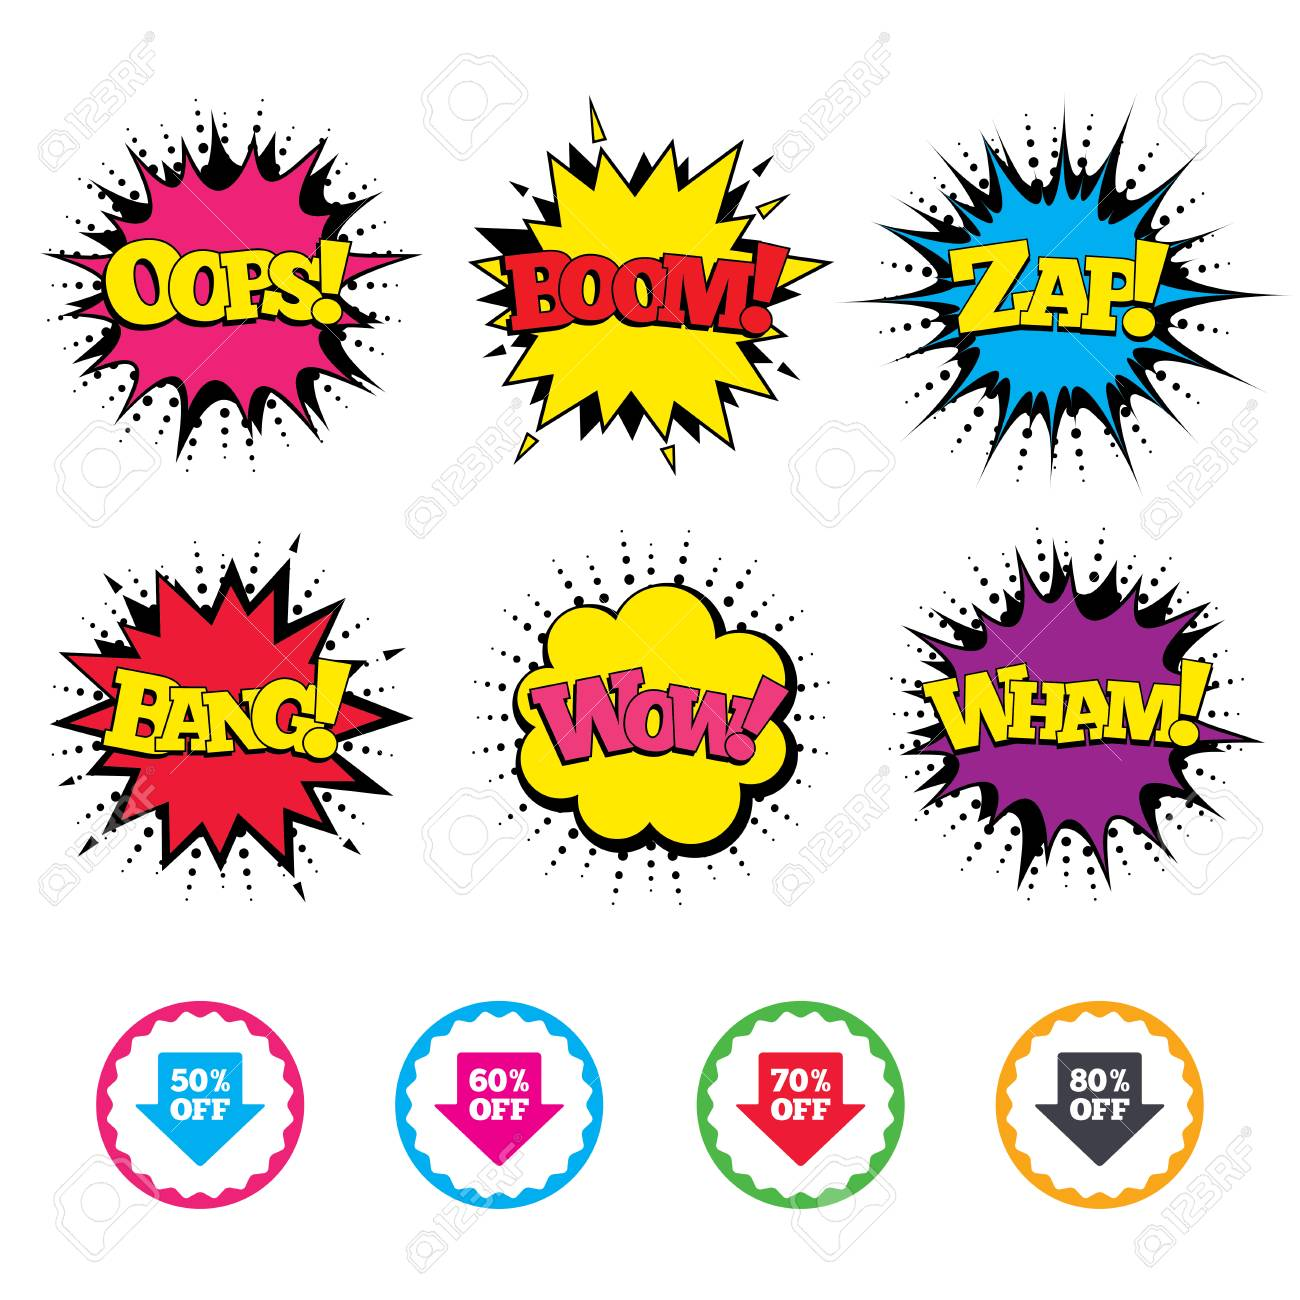 Comic Wow Oops Boom And Wham Sound Effects Sale Arrow Tag